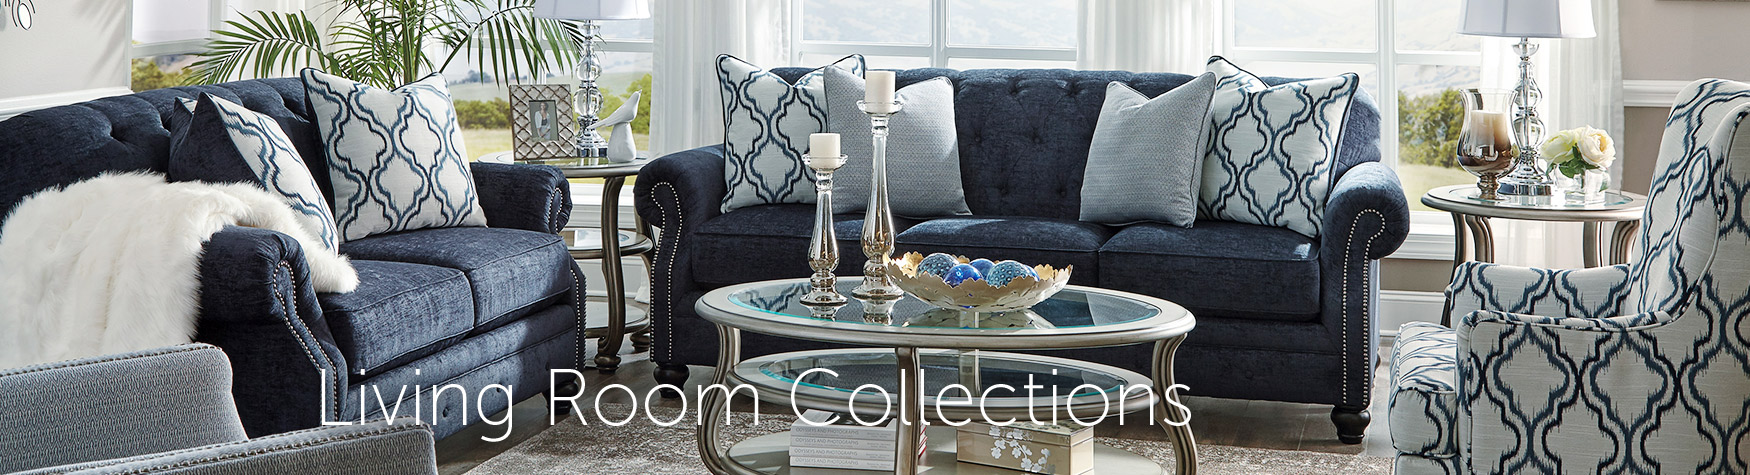 living-room-collection-banner-.jpg